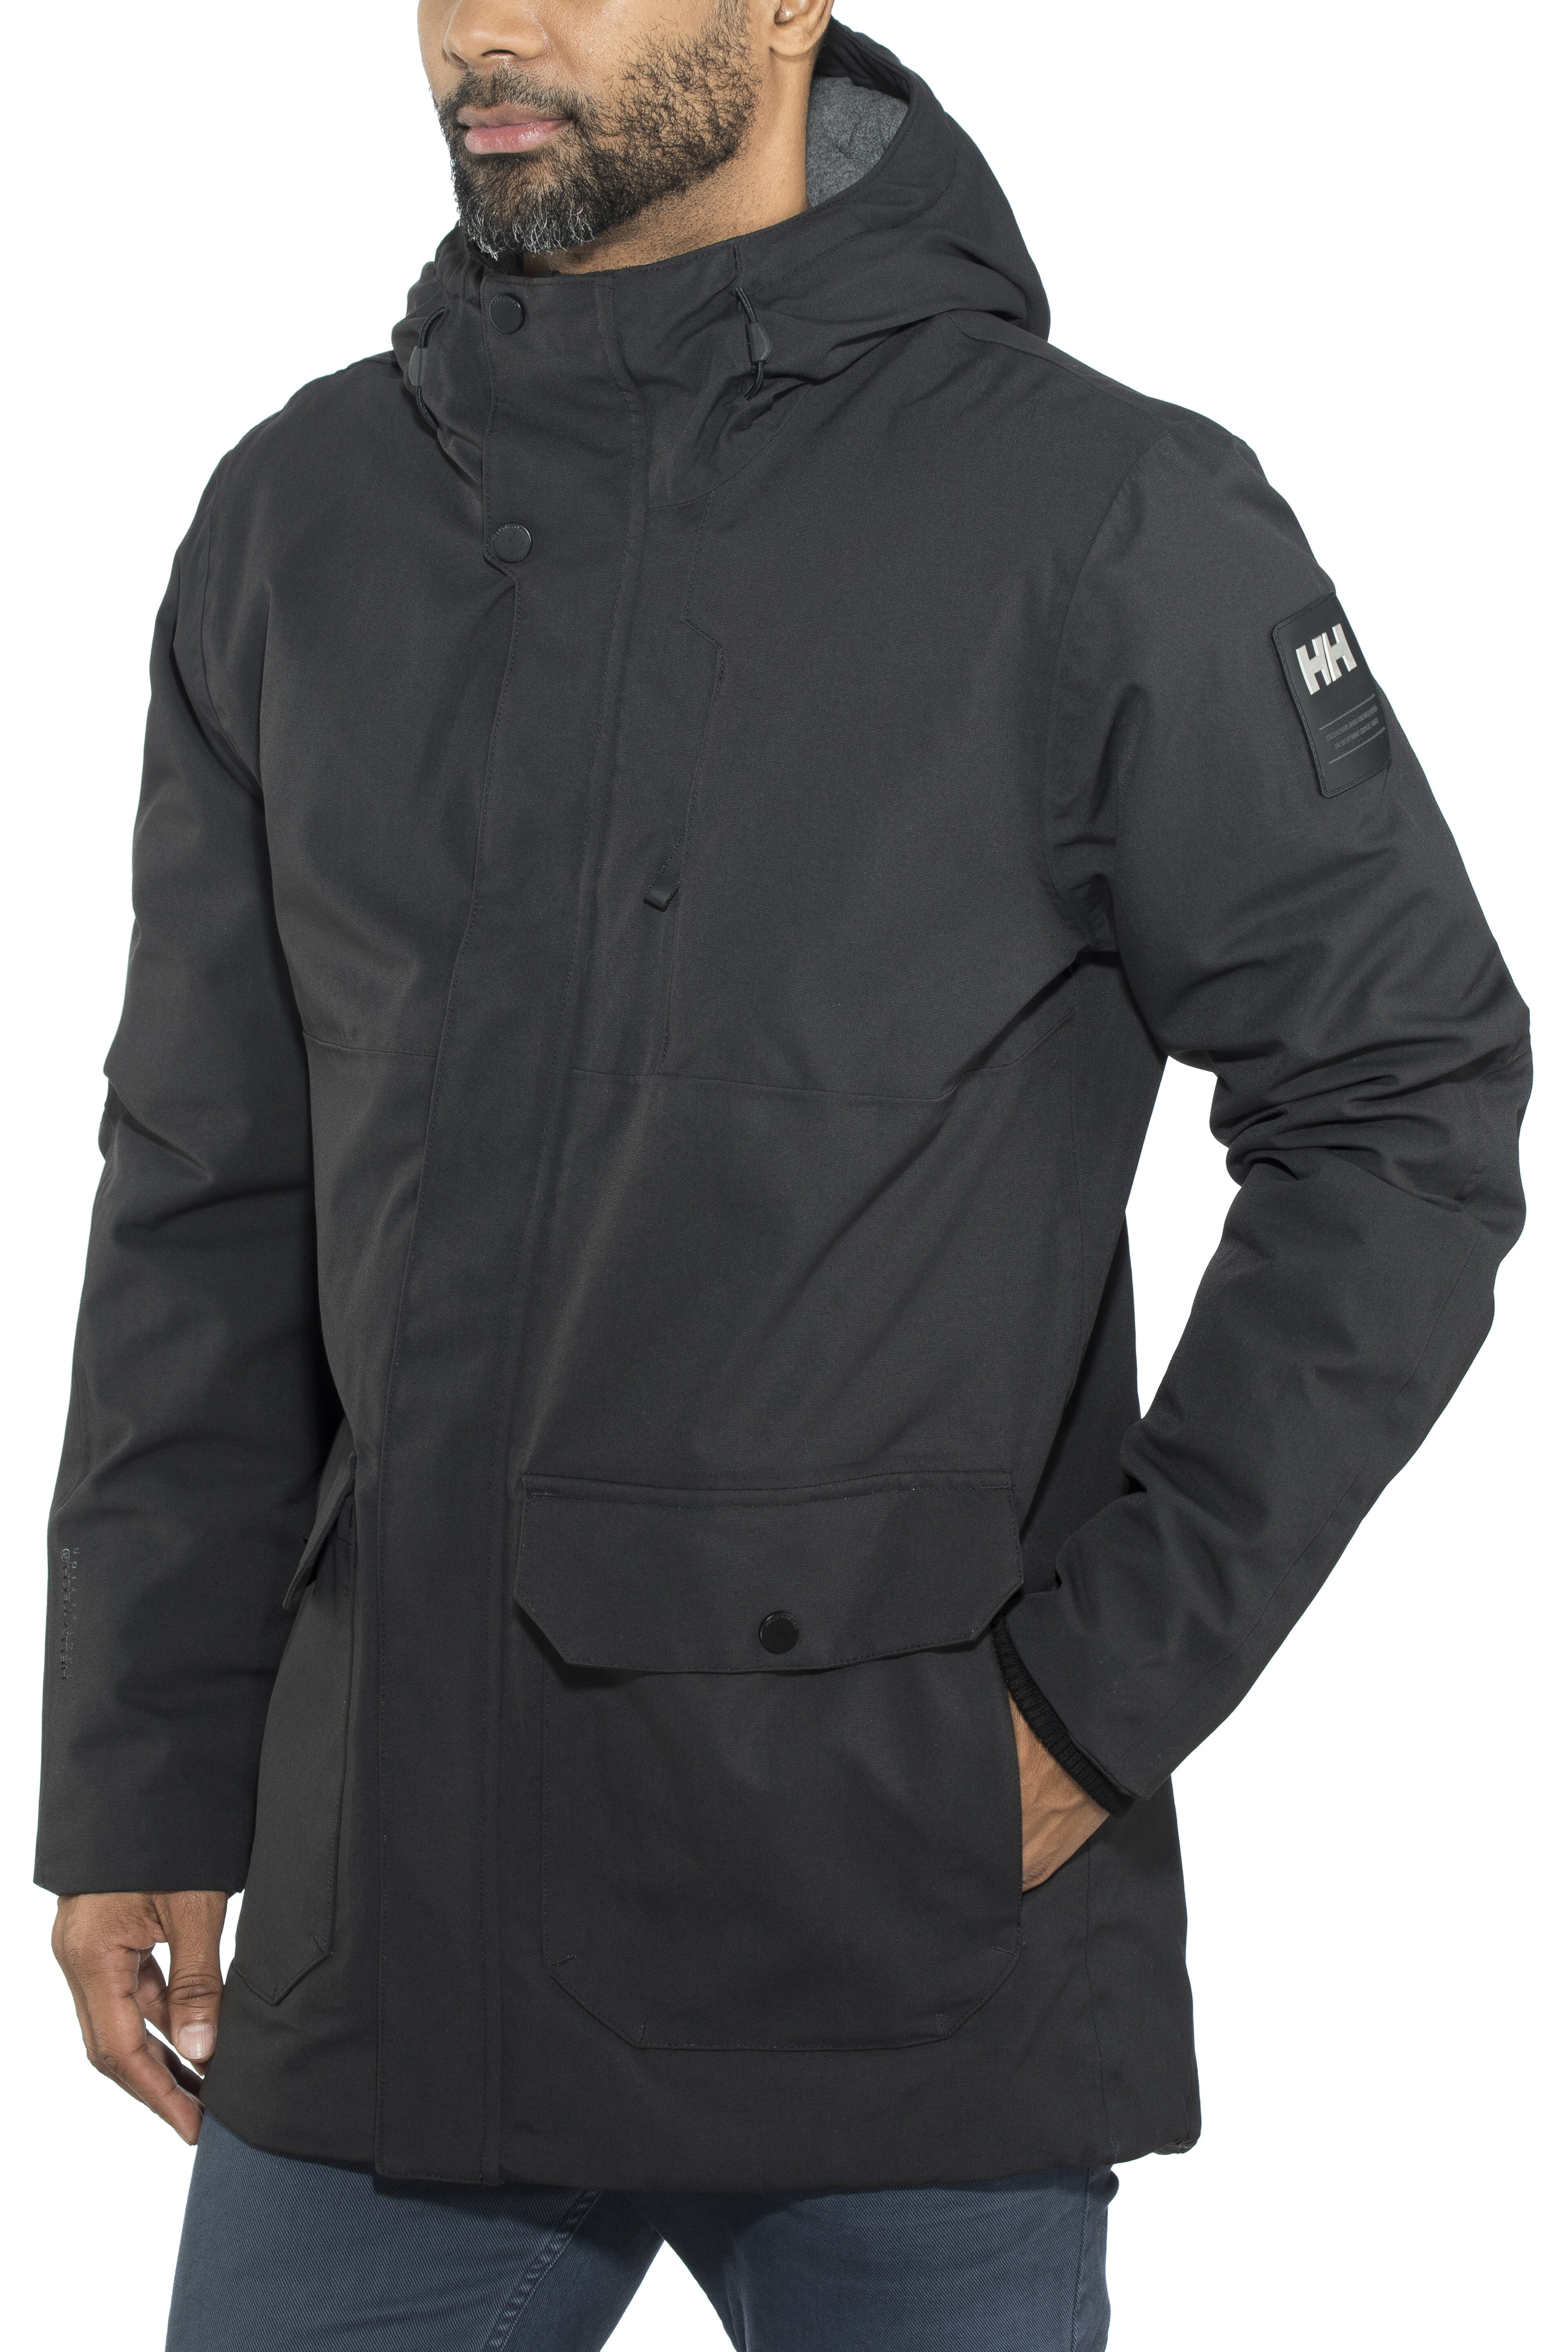 7c52521557 Helly Hansen Urban Long Jacket Herren black | campz.de